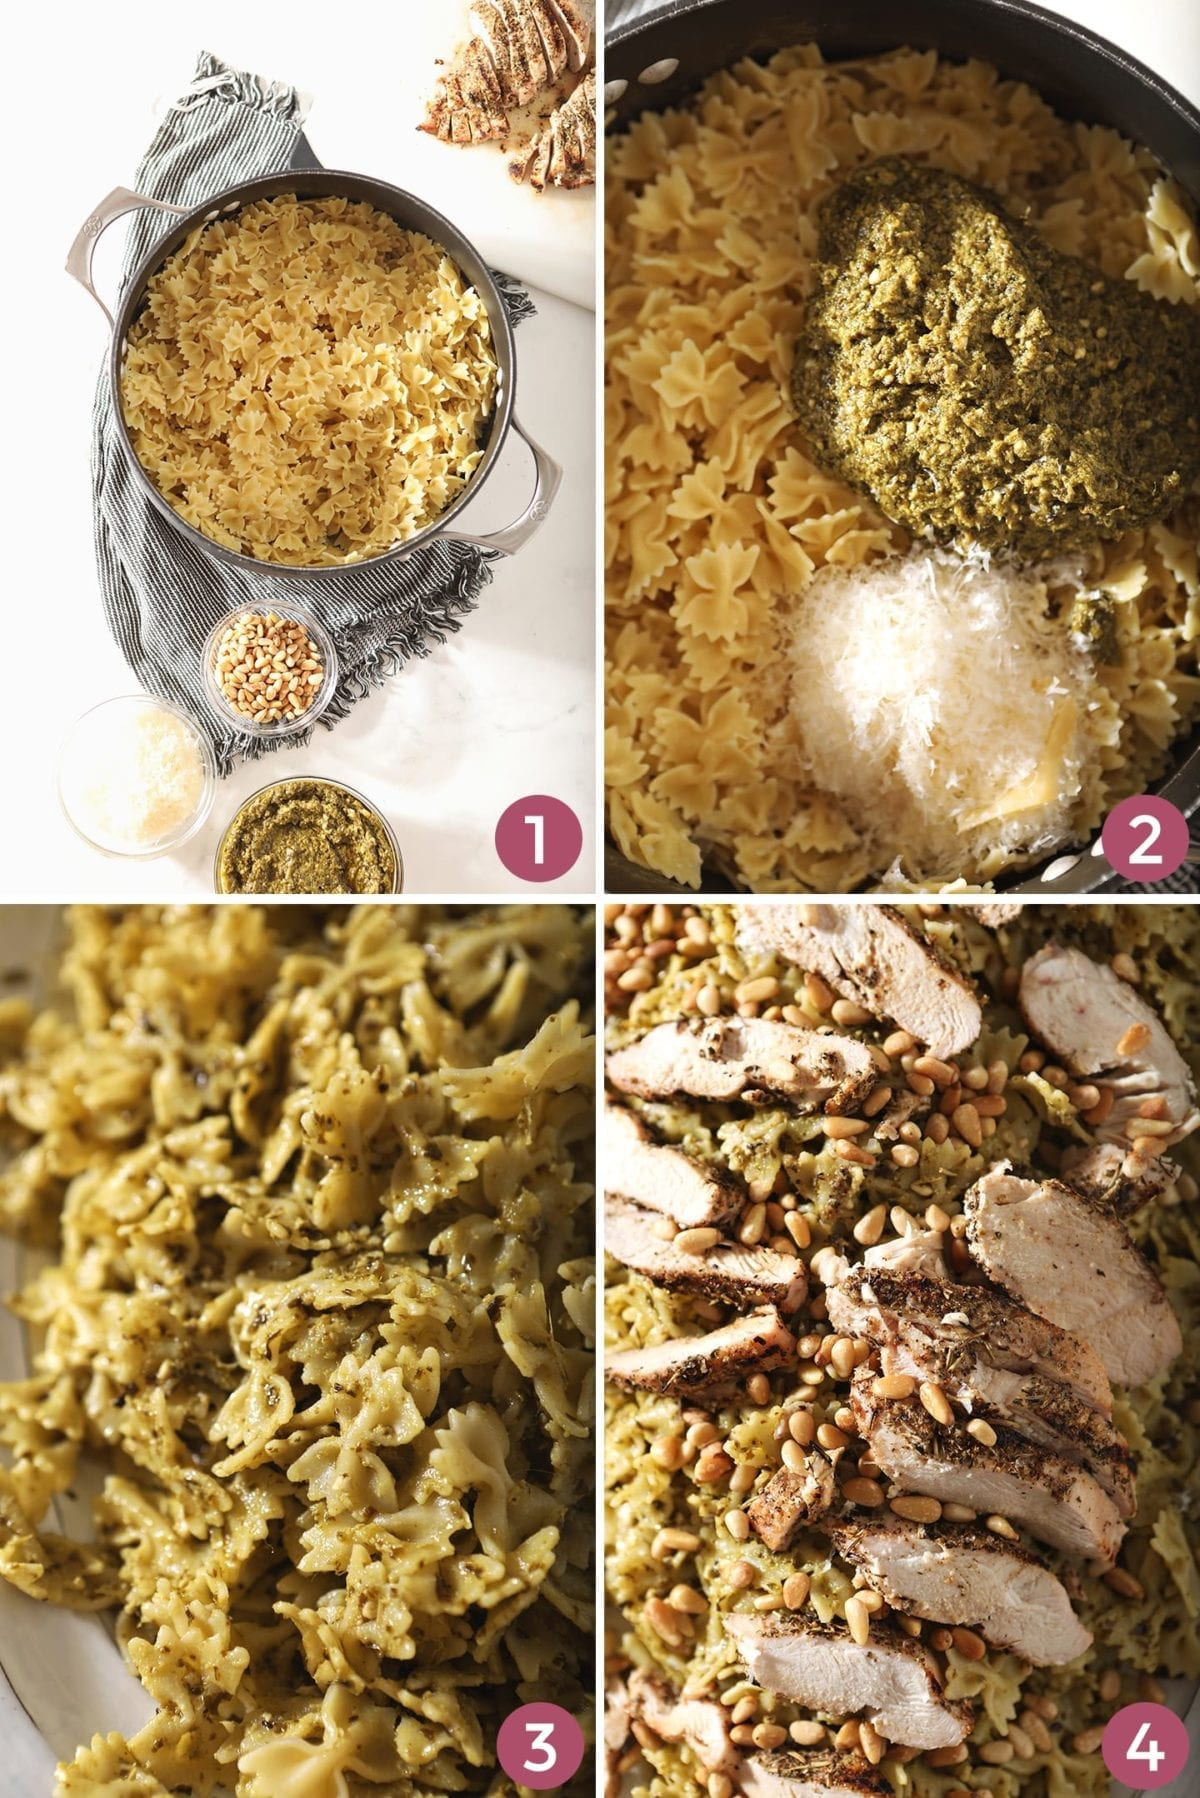 Collage of four images showing how to put together the pesto salad with chicken